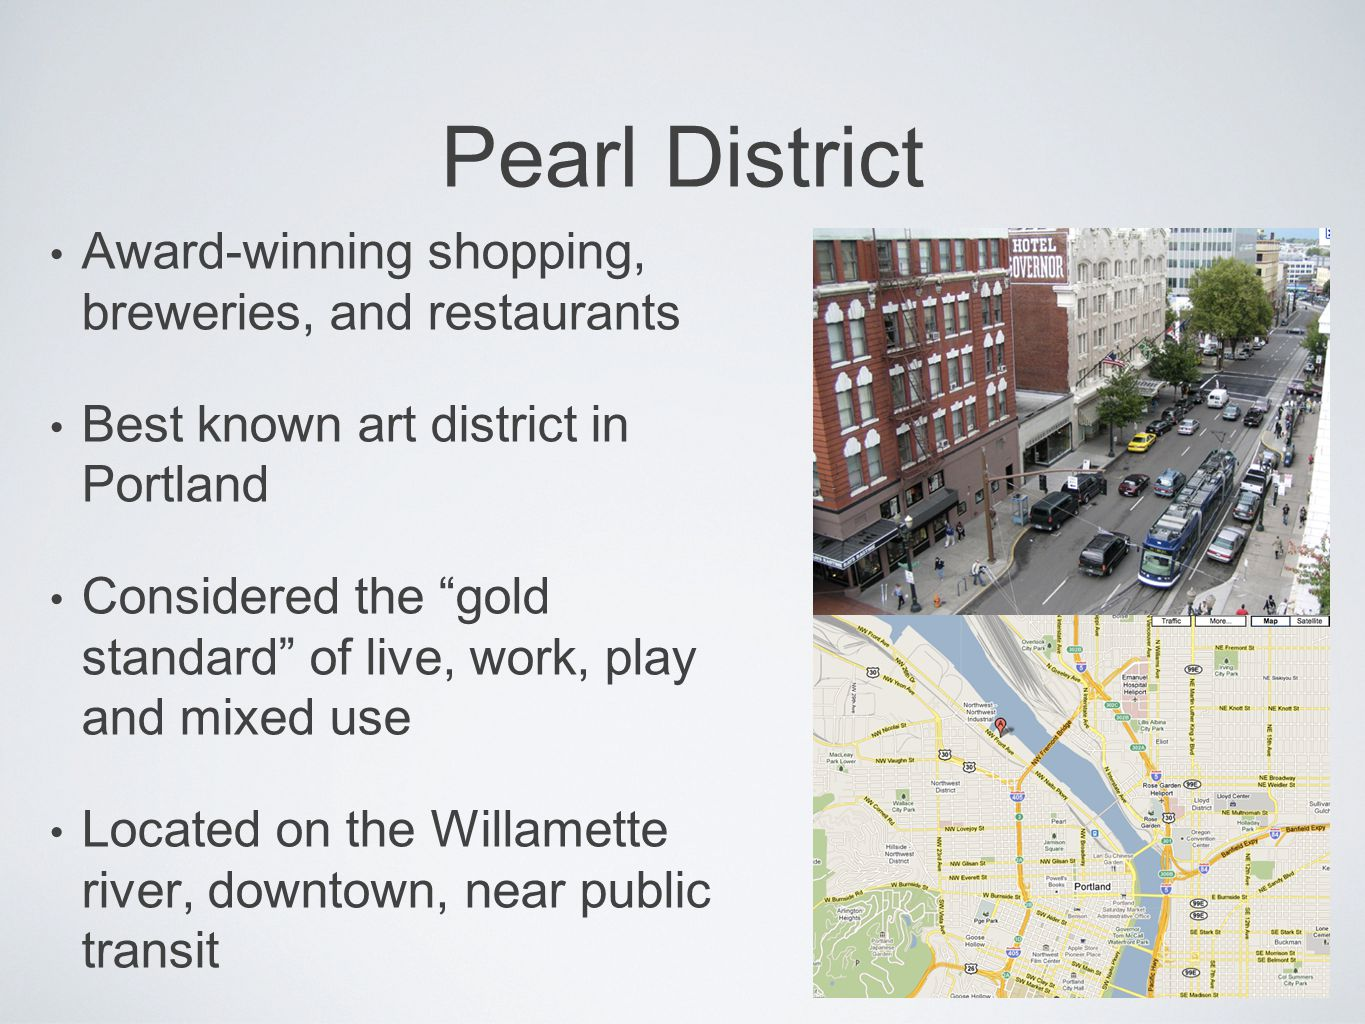 Pearl District Award-winning shopping, breweries, and restaurants Best known art district in Portland Considered the gold standard of live, work, play and mixed use Located on the Willamette river, downtown, near public transit